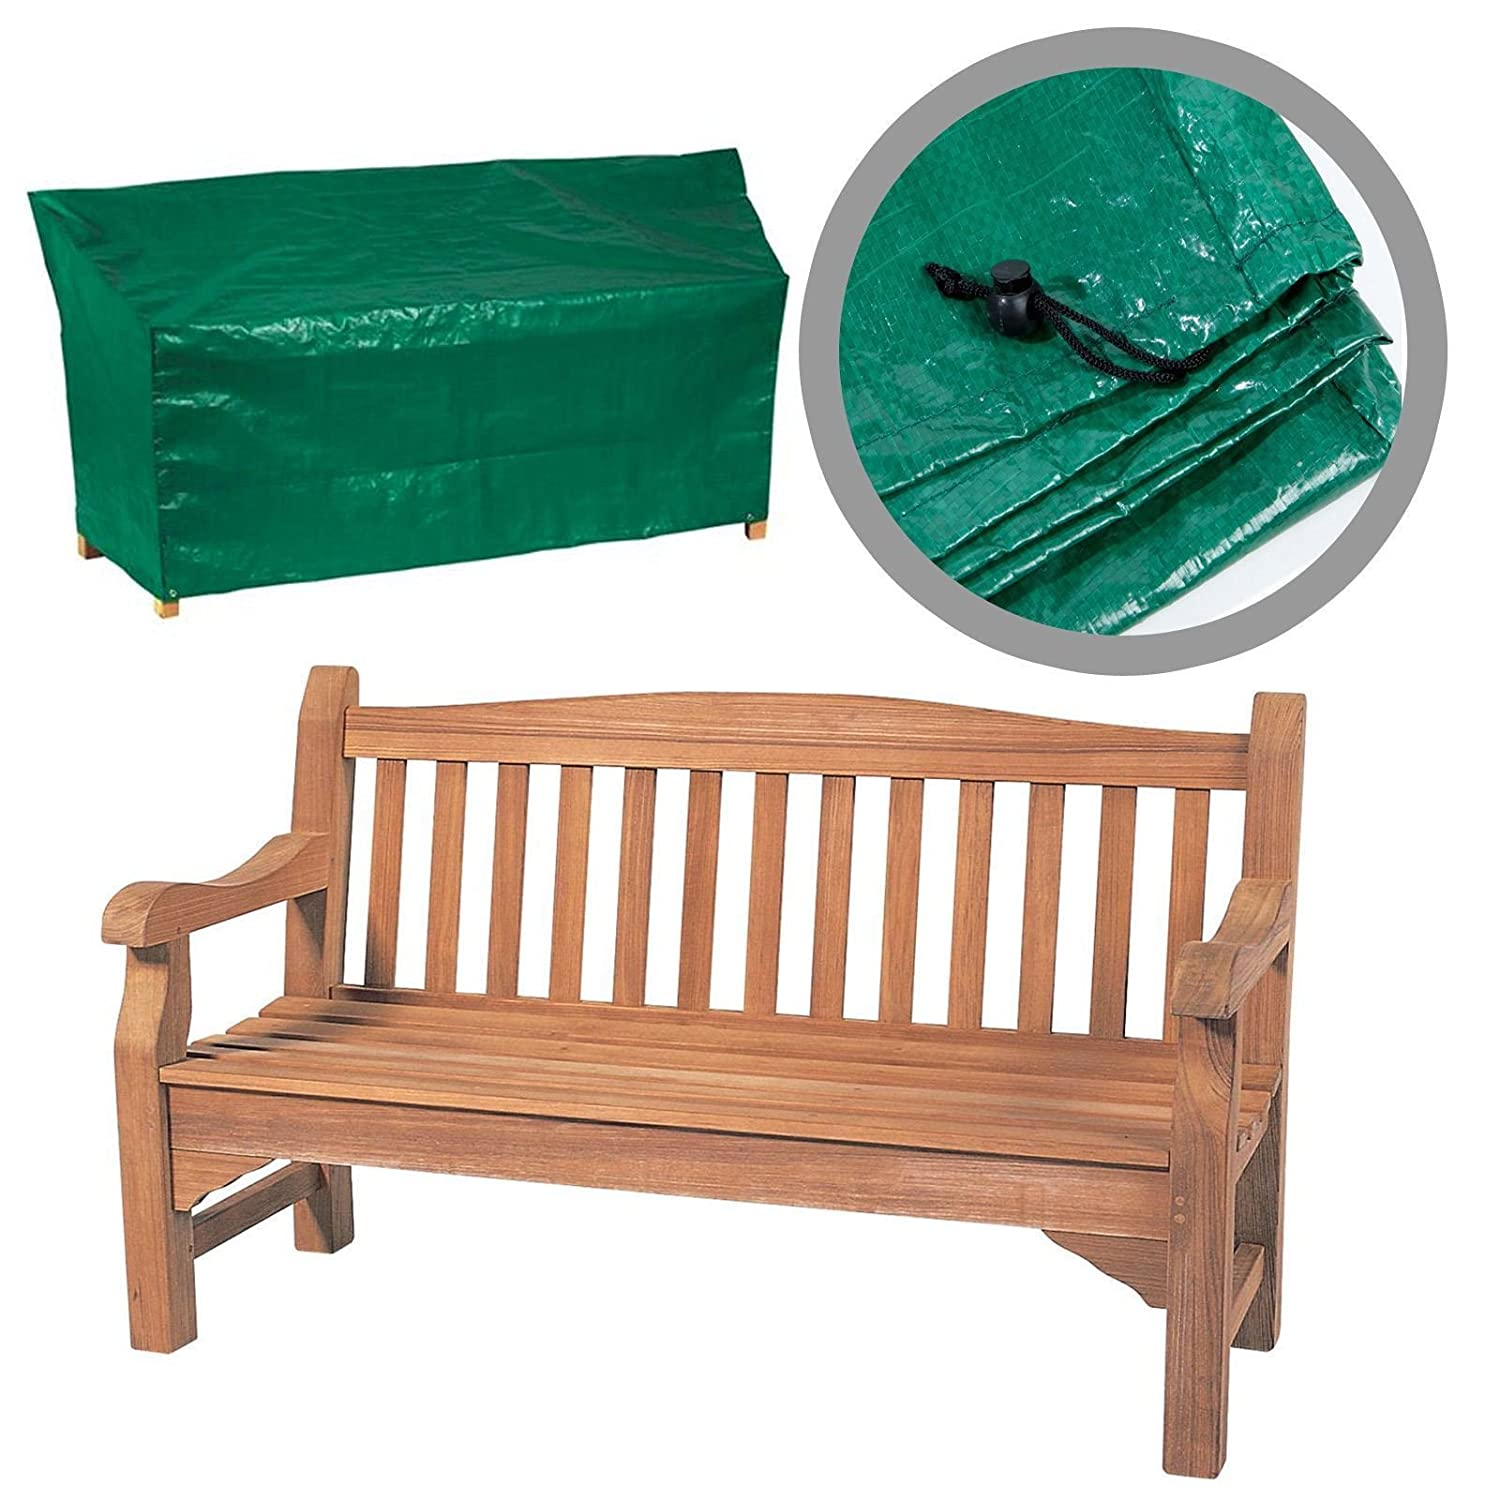 Durable Waterproof Green 4FT 1.2M 2 Seater Garden Bench Seat Protection Cover SONIC®